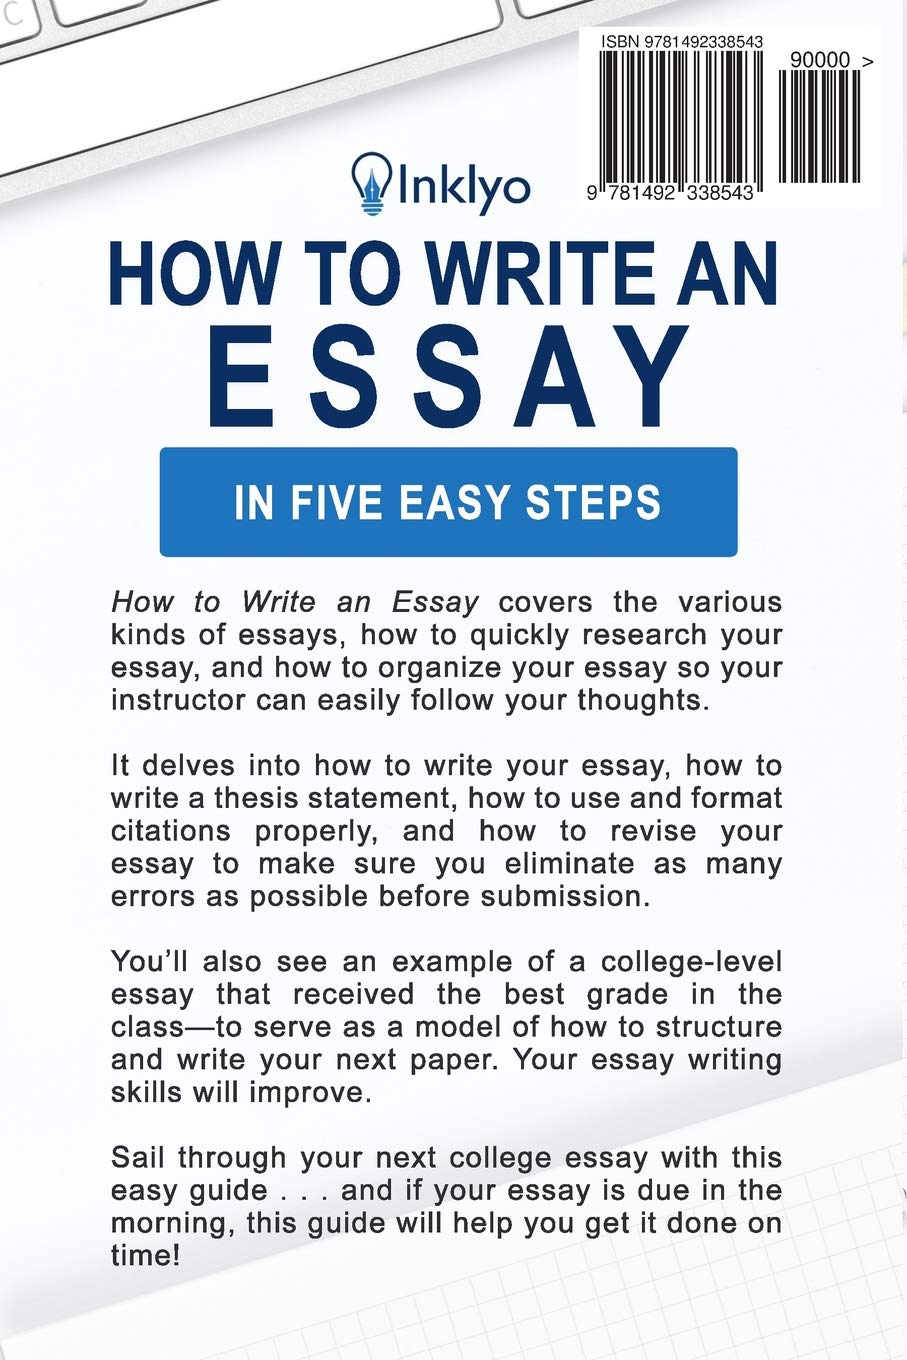 005 Easy Essay Writing Example Marvelous Examples Ielts Tips Task 2 Topics Full